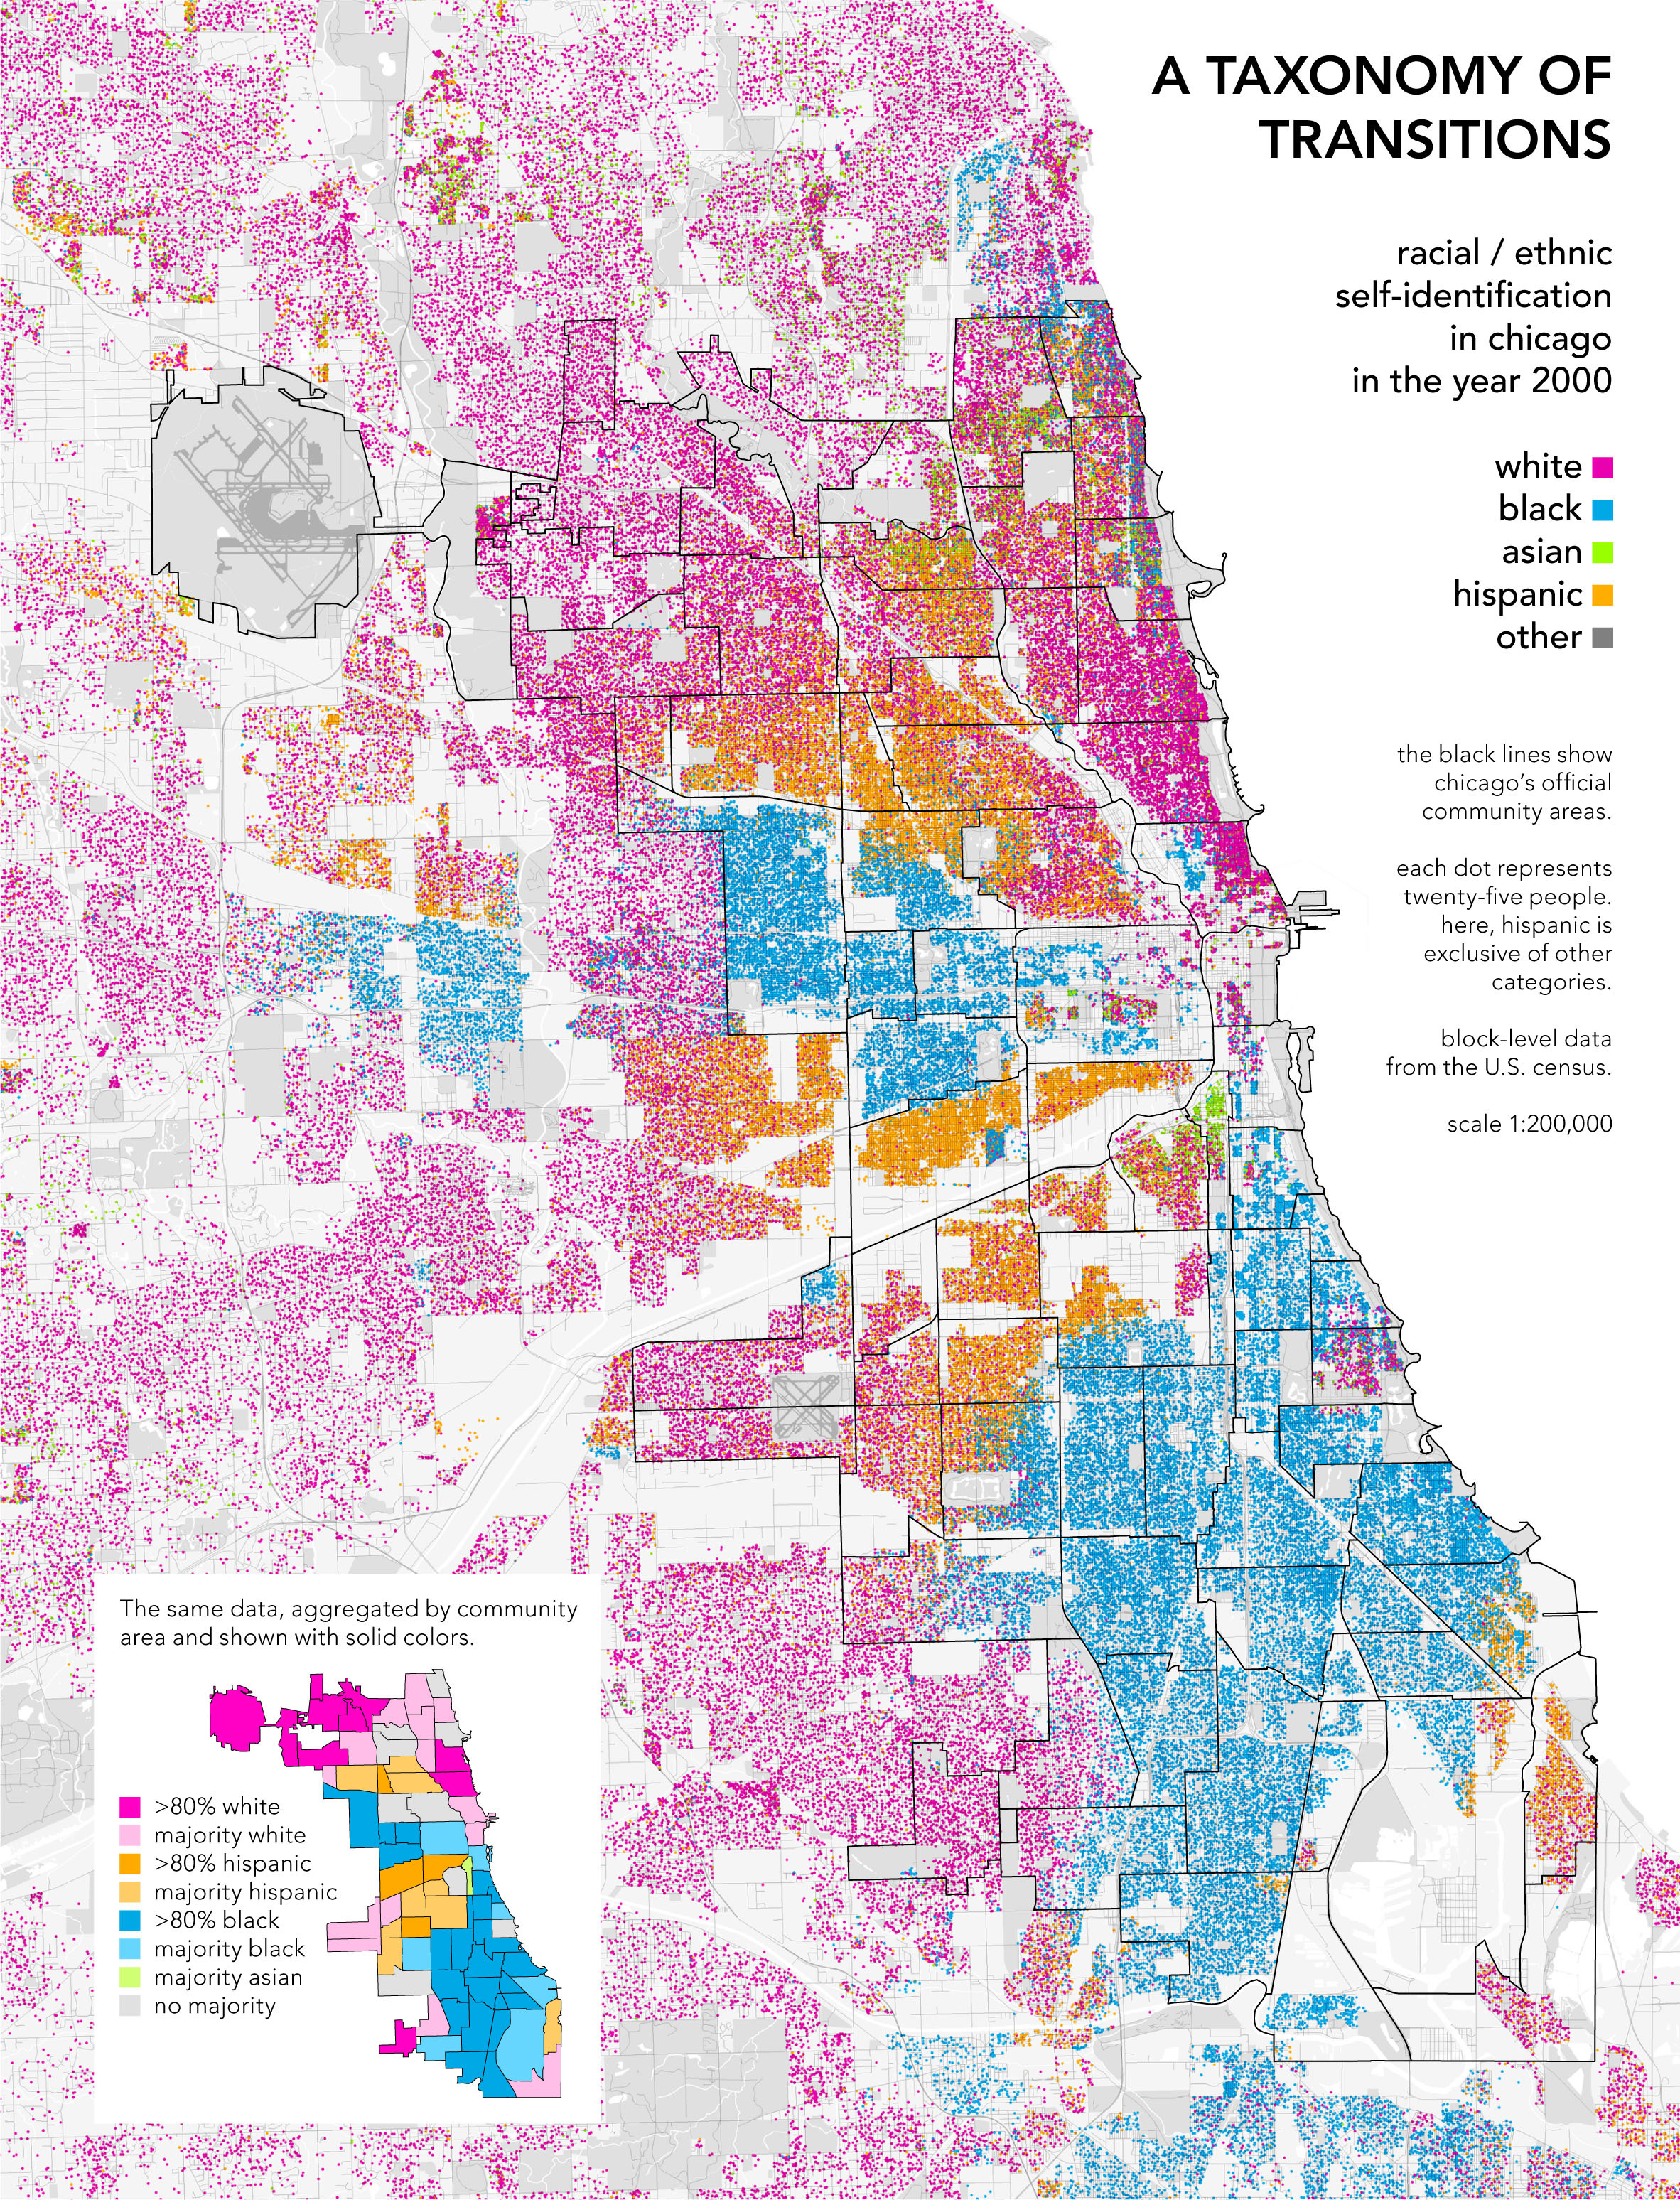 chicagodots race big statistics HD Wallpaper